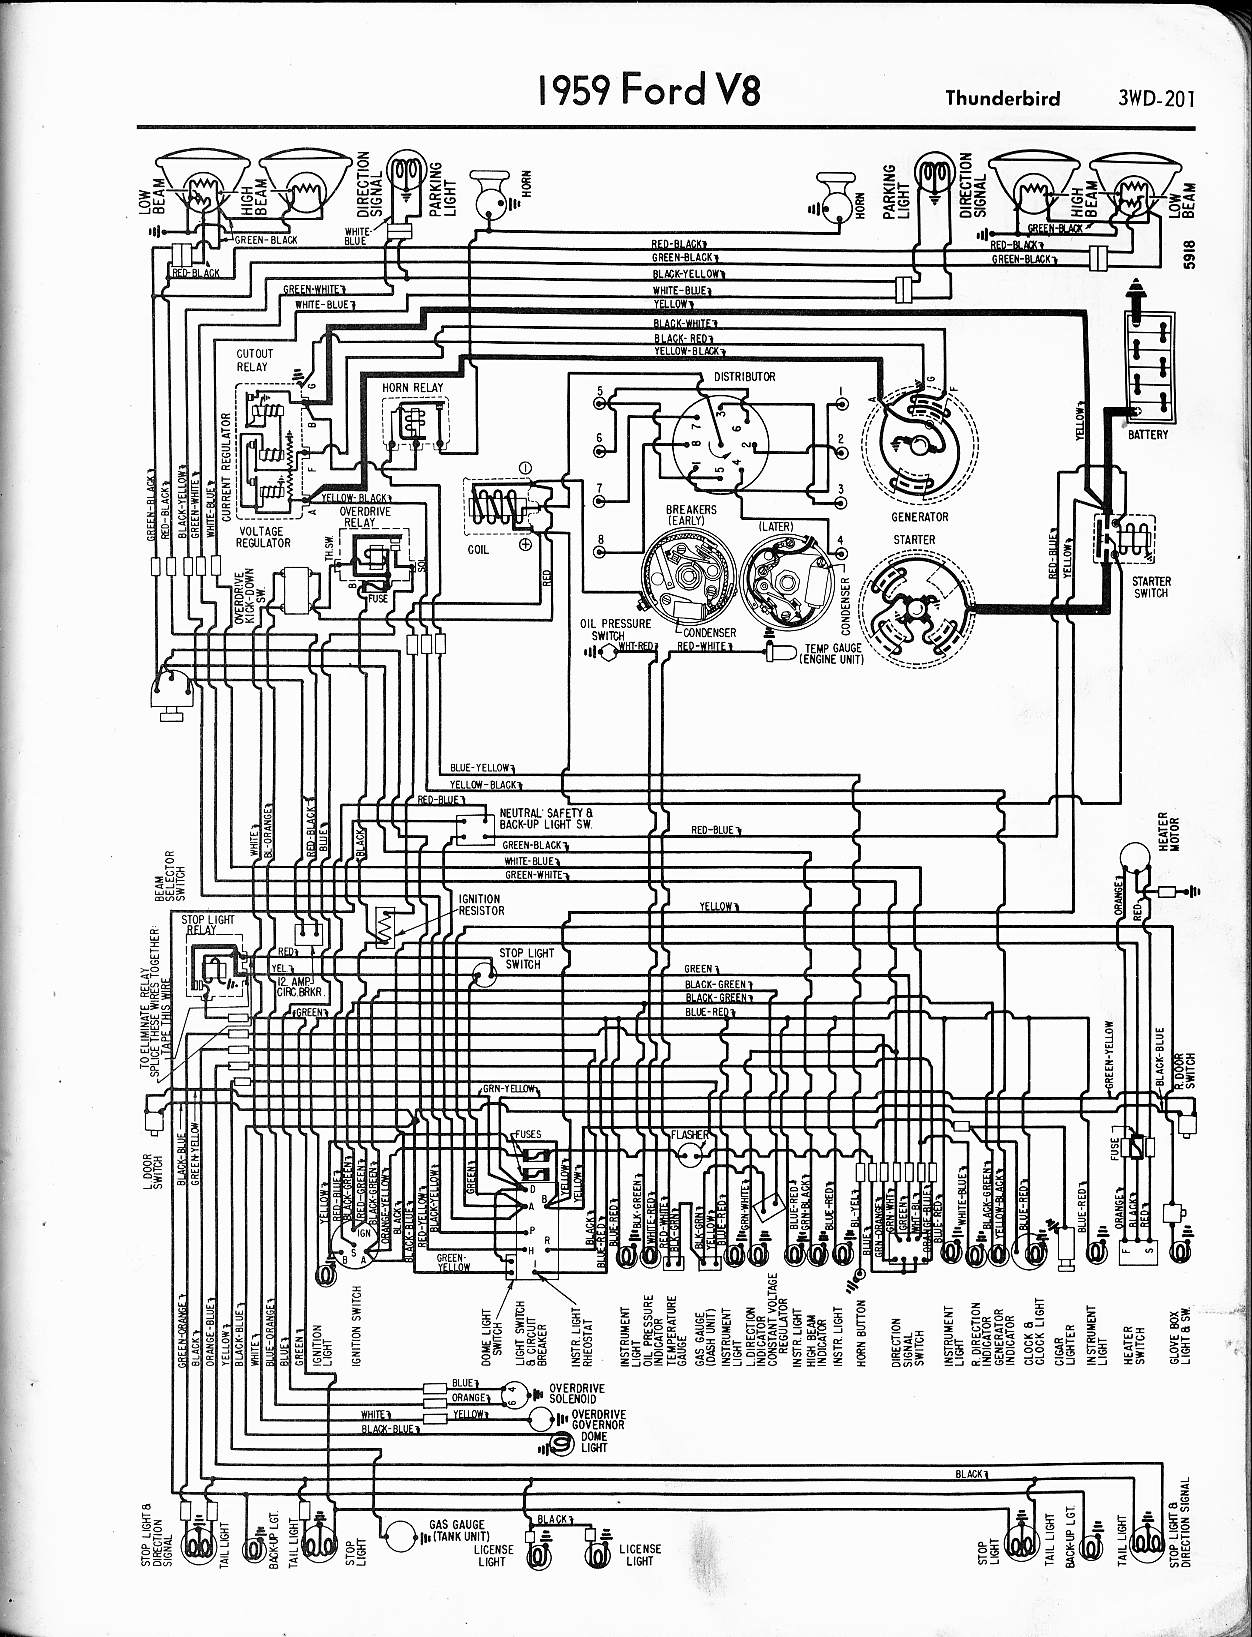 1970 F100 Fuse Box Basic Wiring Schematic 1975 Ford Maverick Diagram Library Windstar